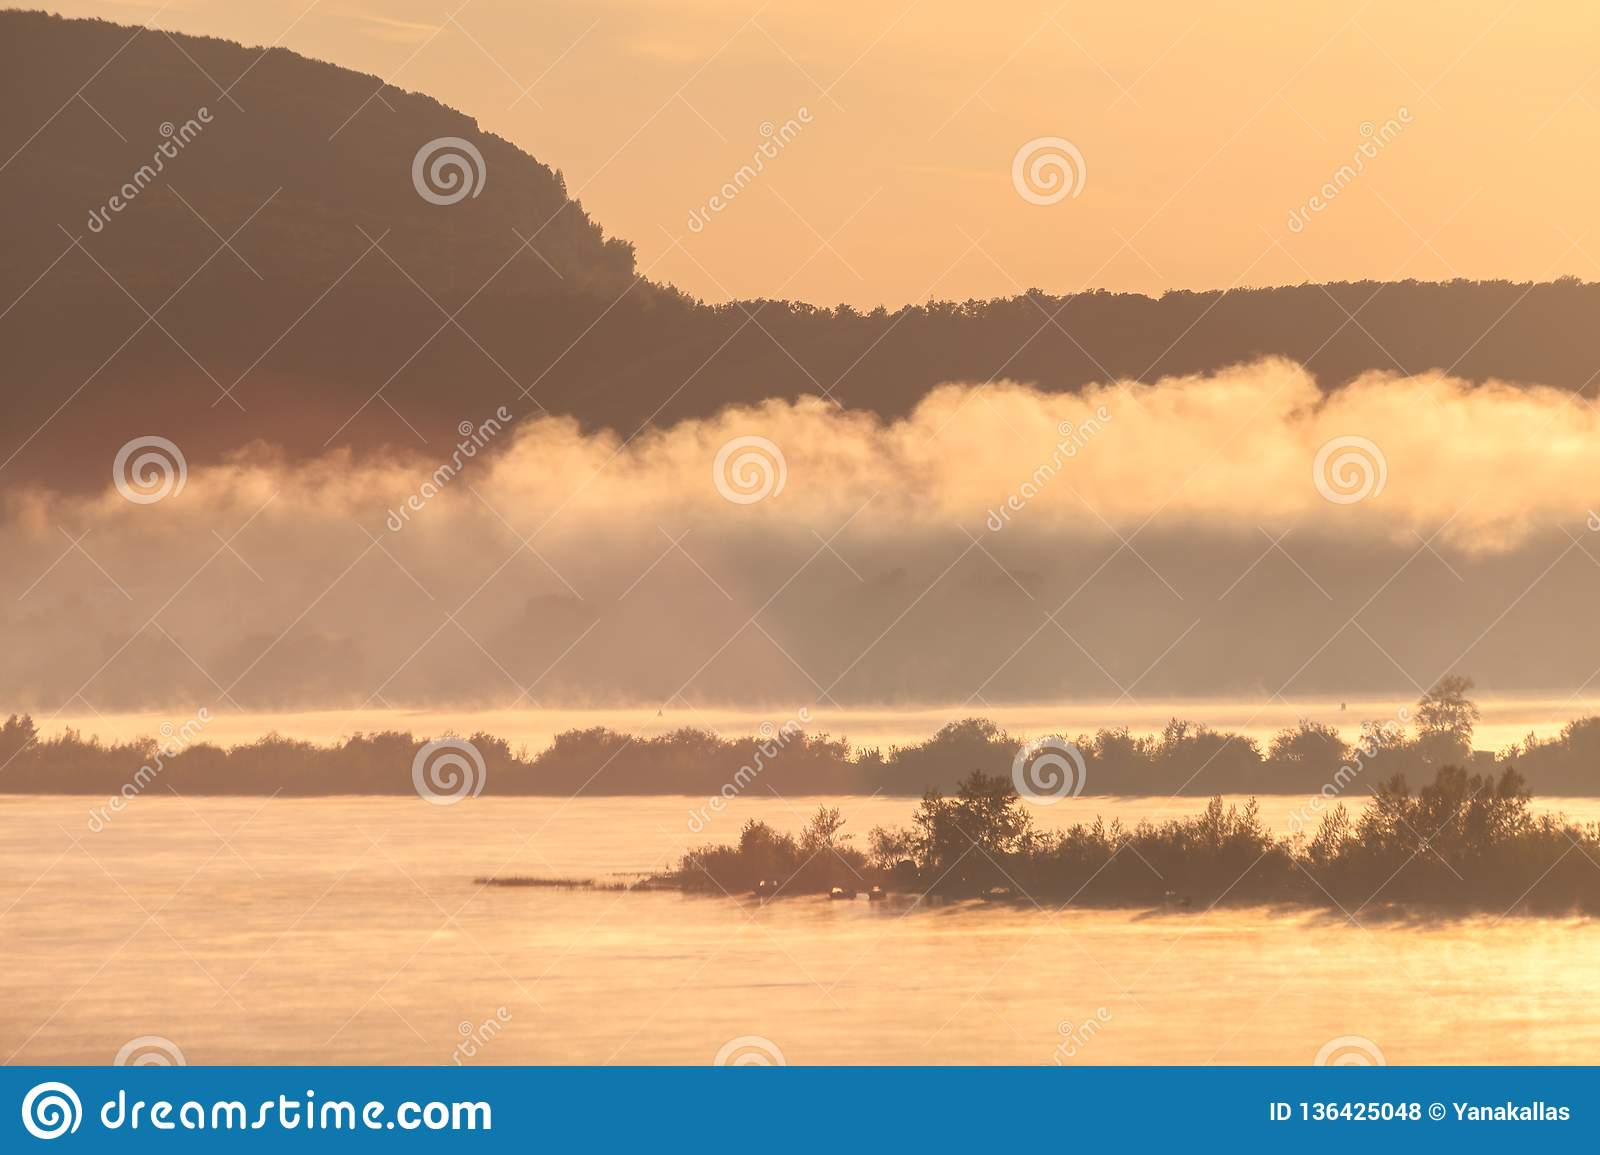 Morning fog rises over the river in the light of the rising sun against the silhouettes of mountains and Islands